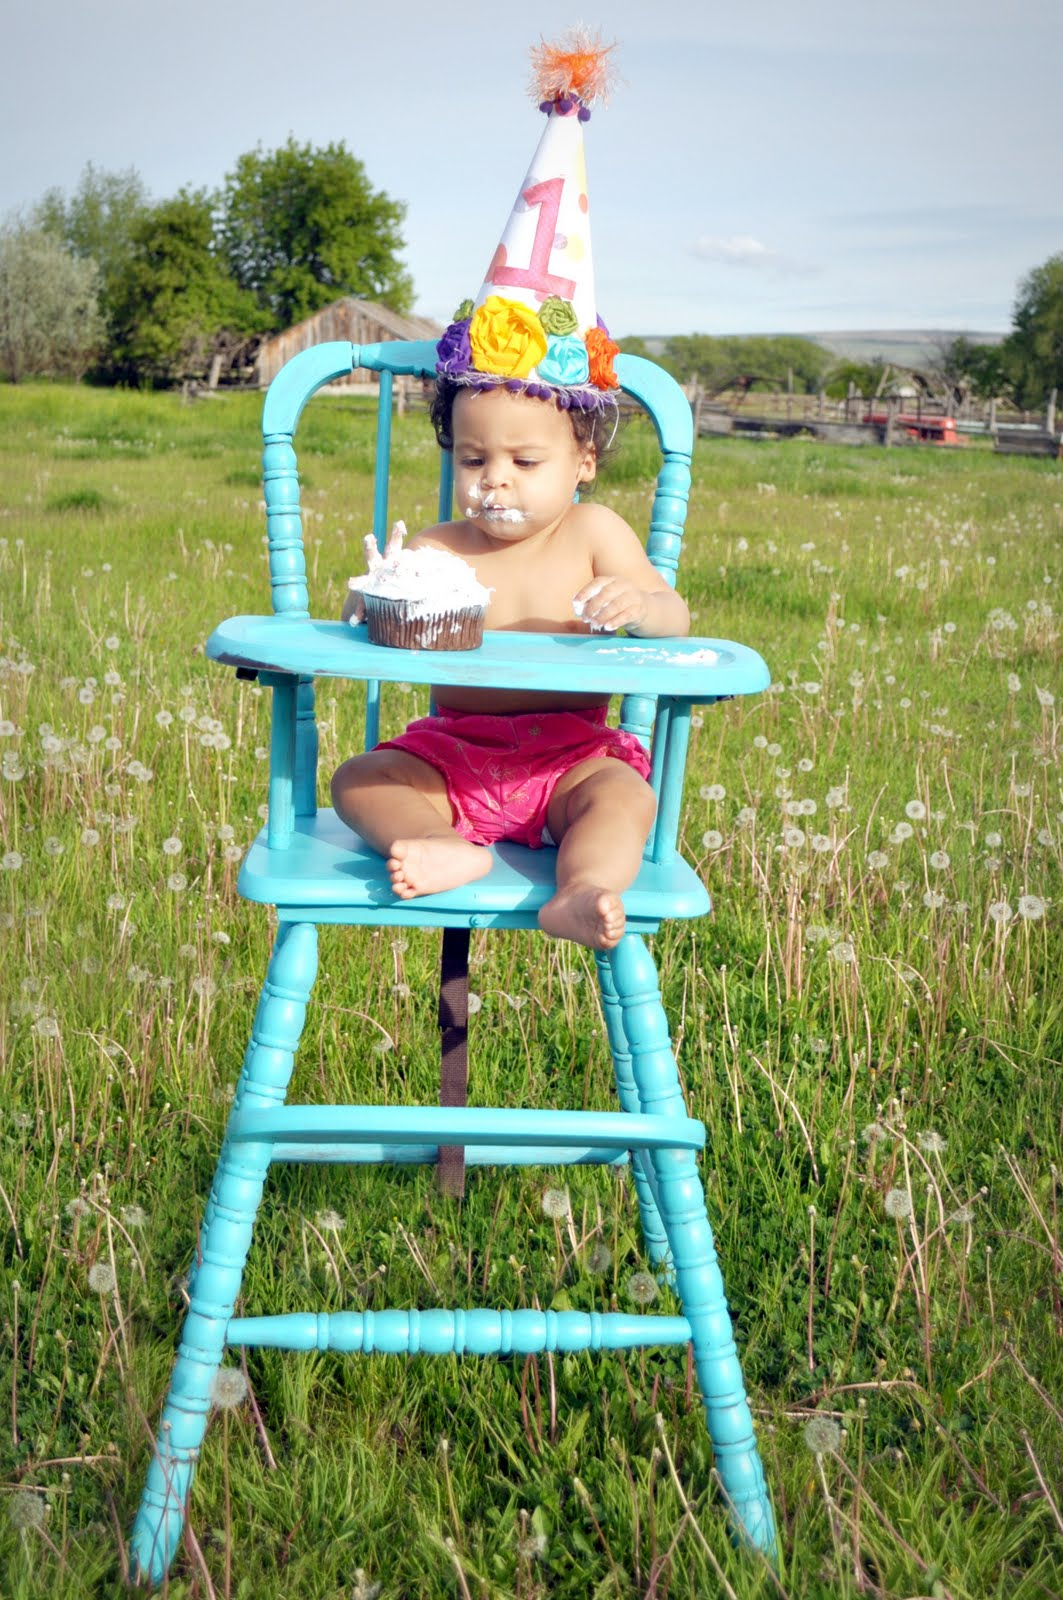 Painted wooden high chairs - Don T You Just How Fresh A Coat Of Paint Can Make Things